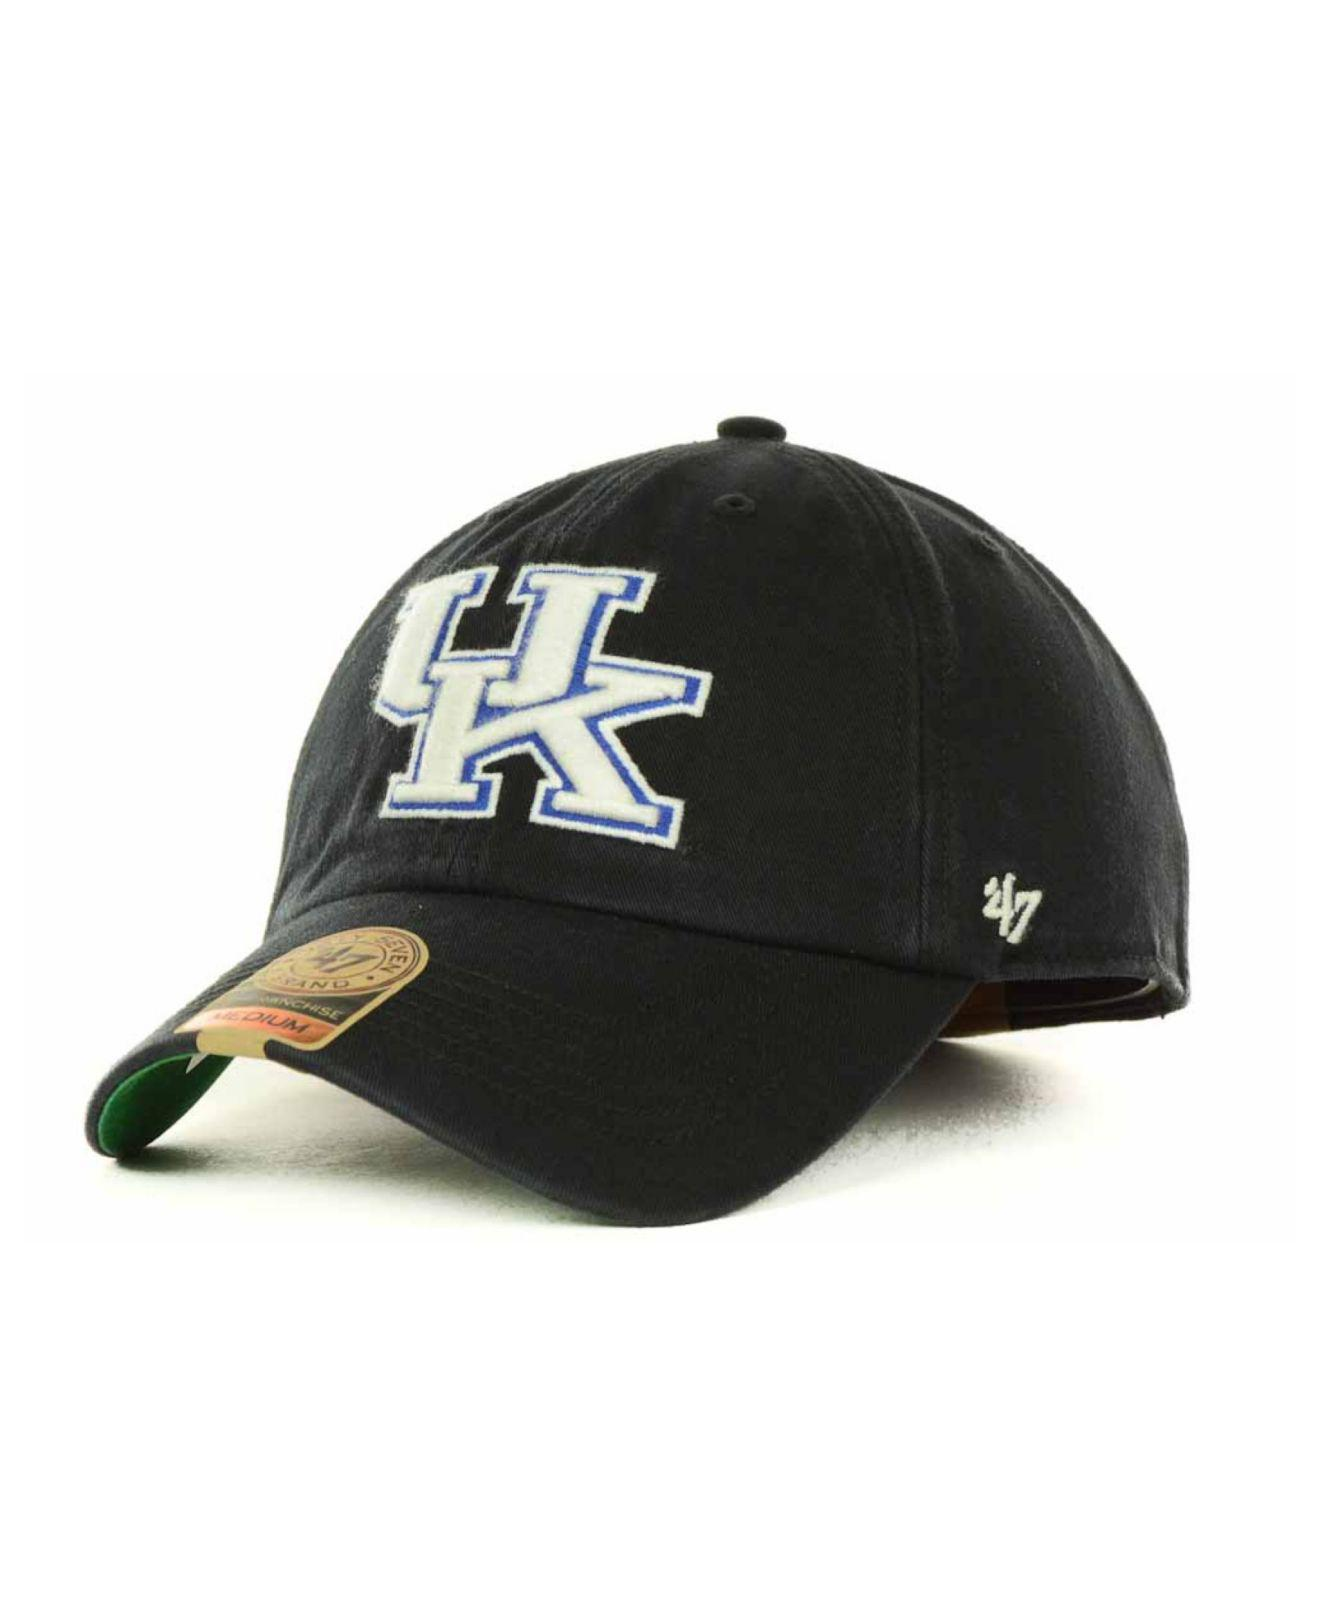 new products c8bf6 fbef5 47 Brand. Men s Black Kentucky Wildcats Franchise Cap